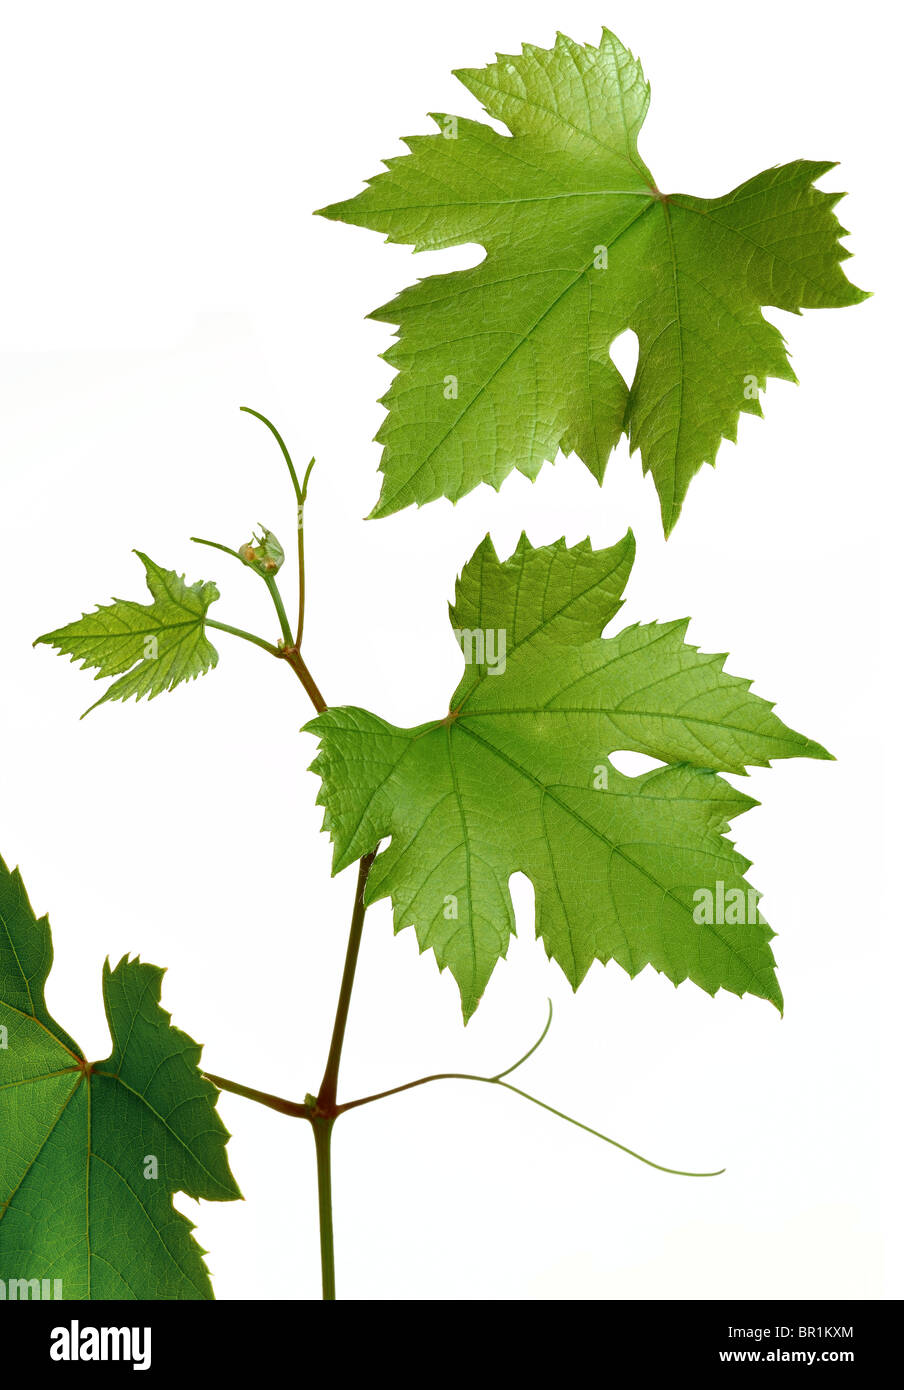 Grape vine leaves and shoot - Stock Image